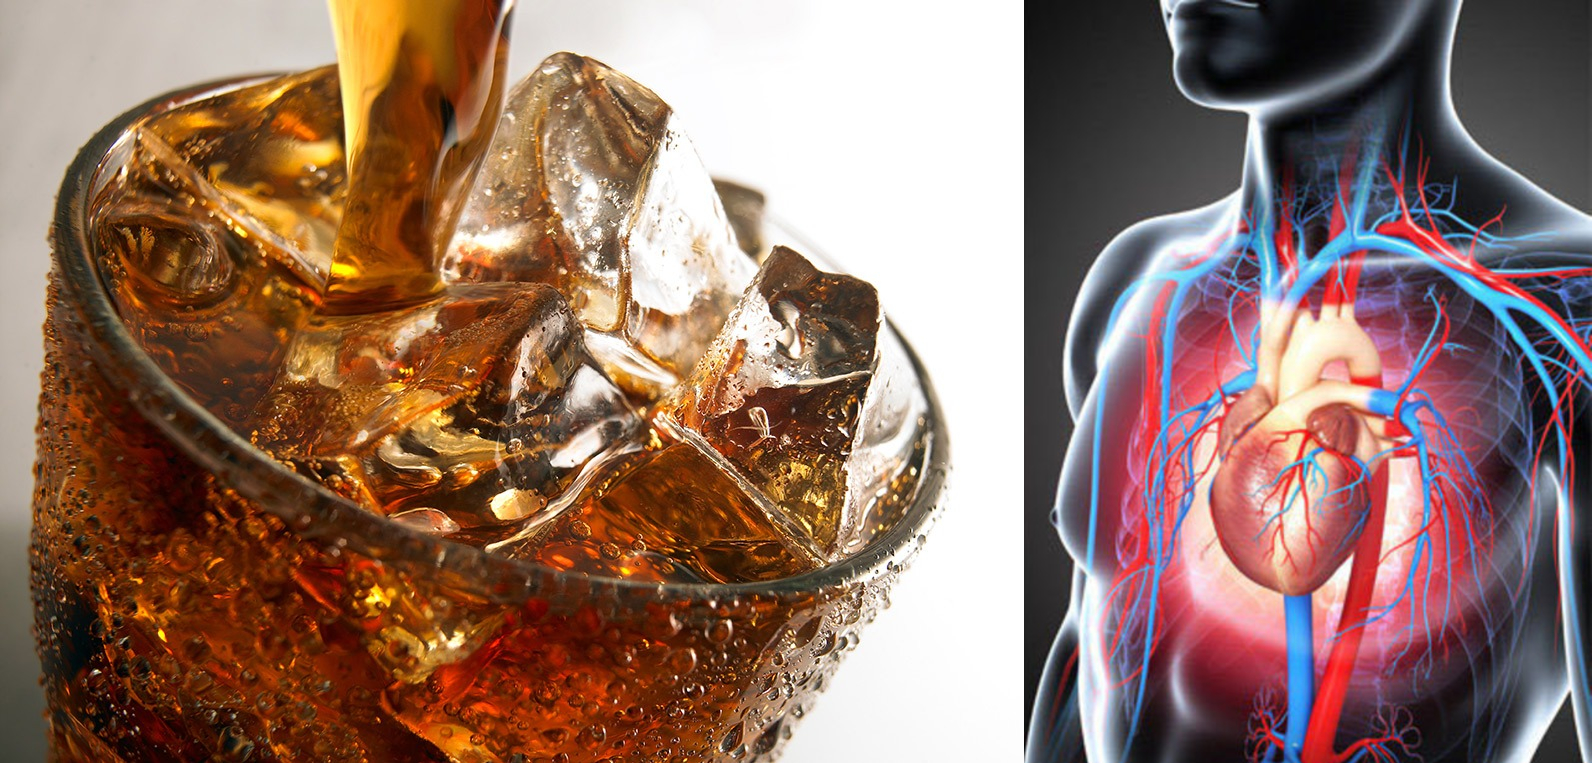 Artificially Sweetened Drinks Are Linked To Higher Stroke Risk